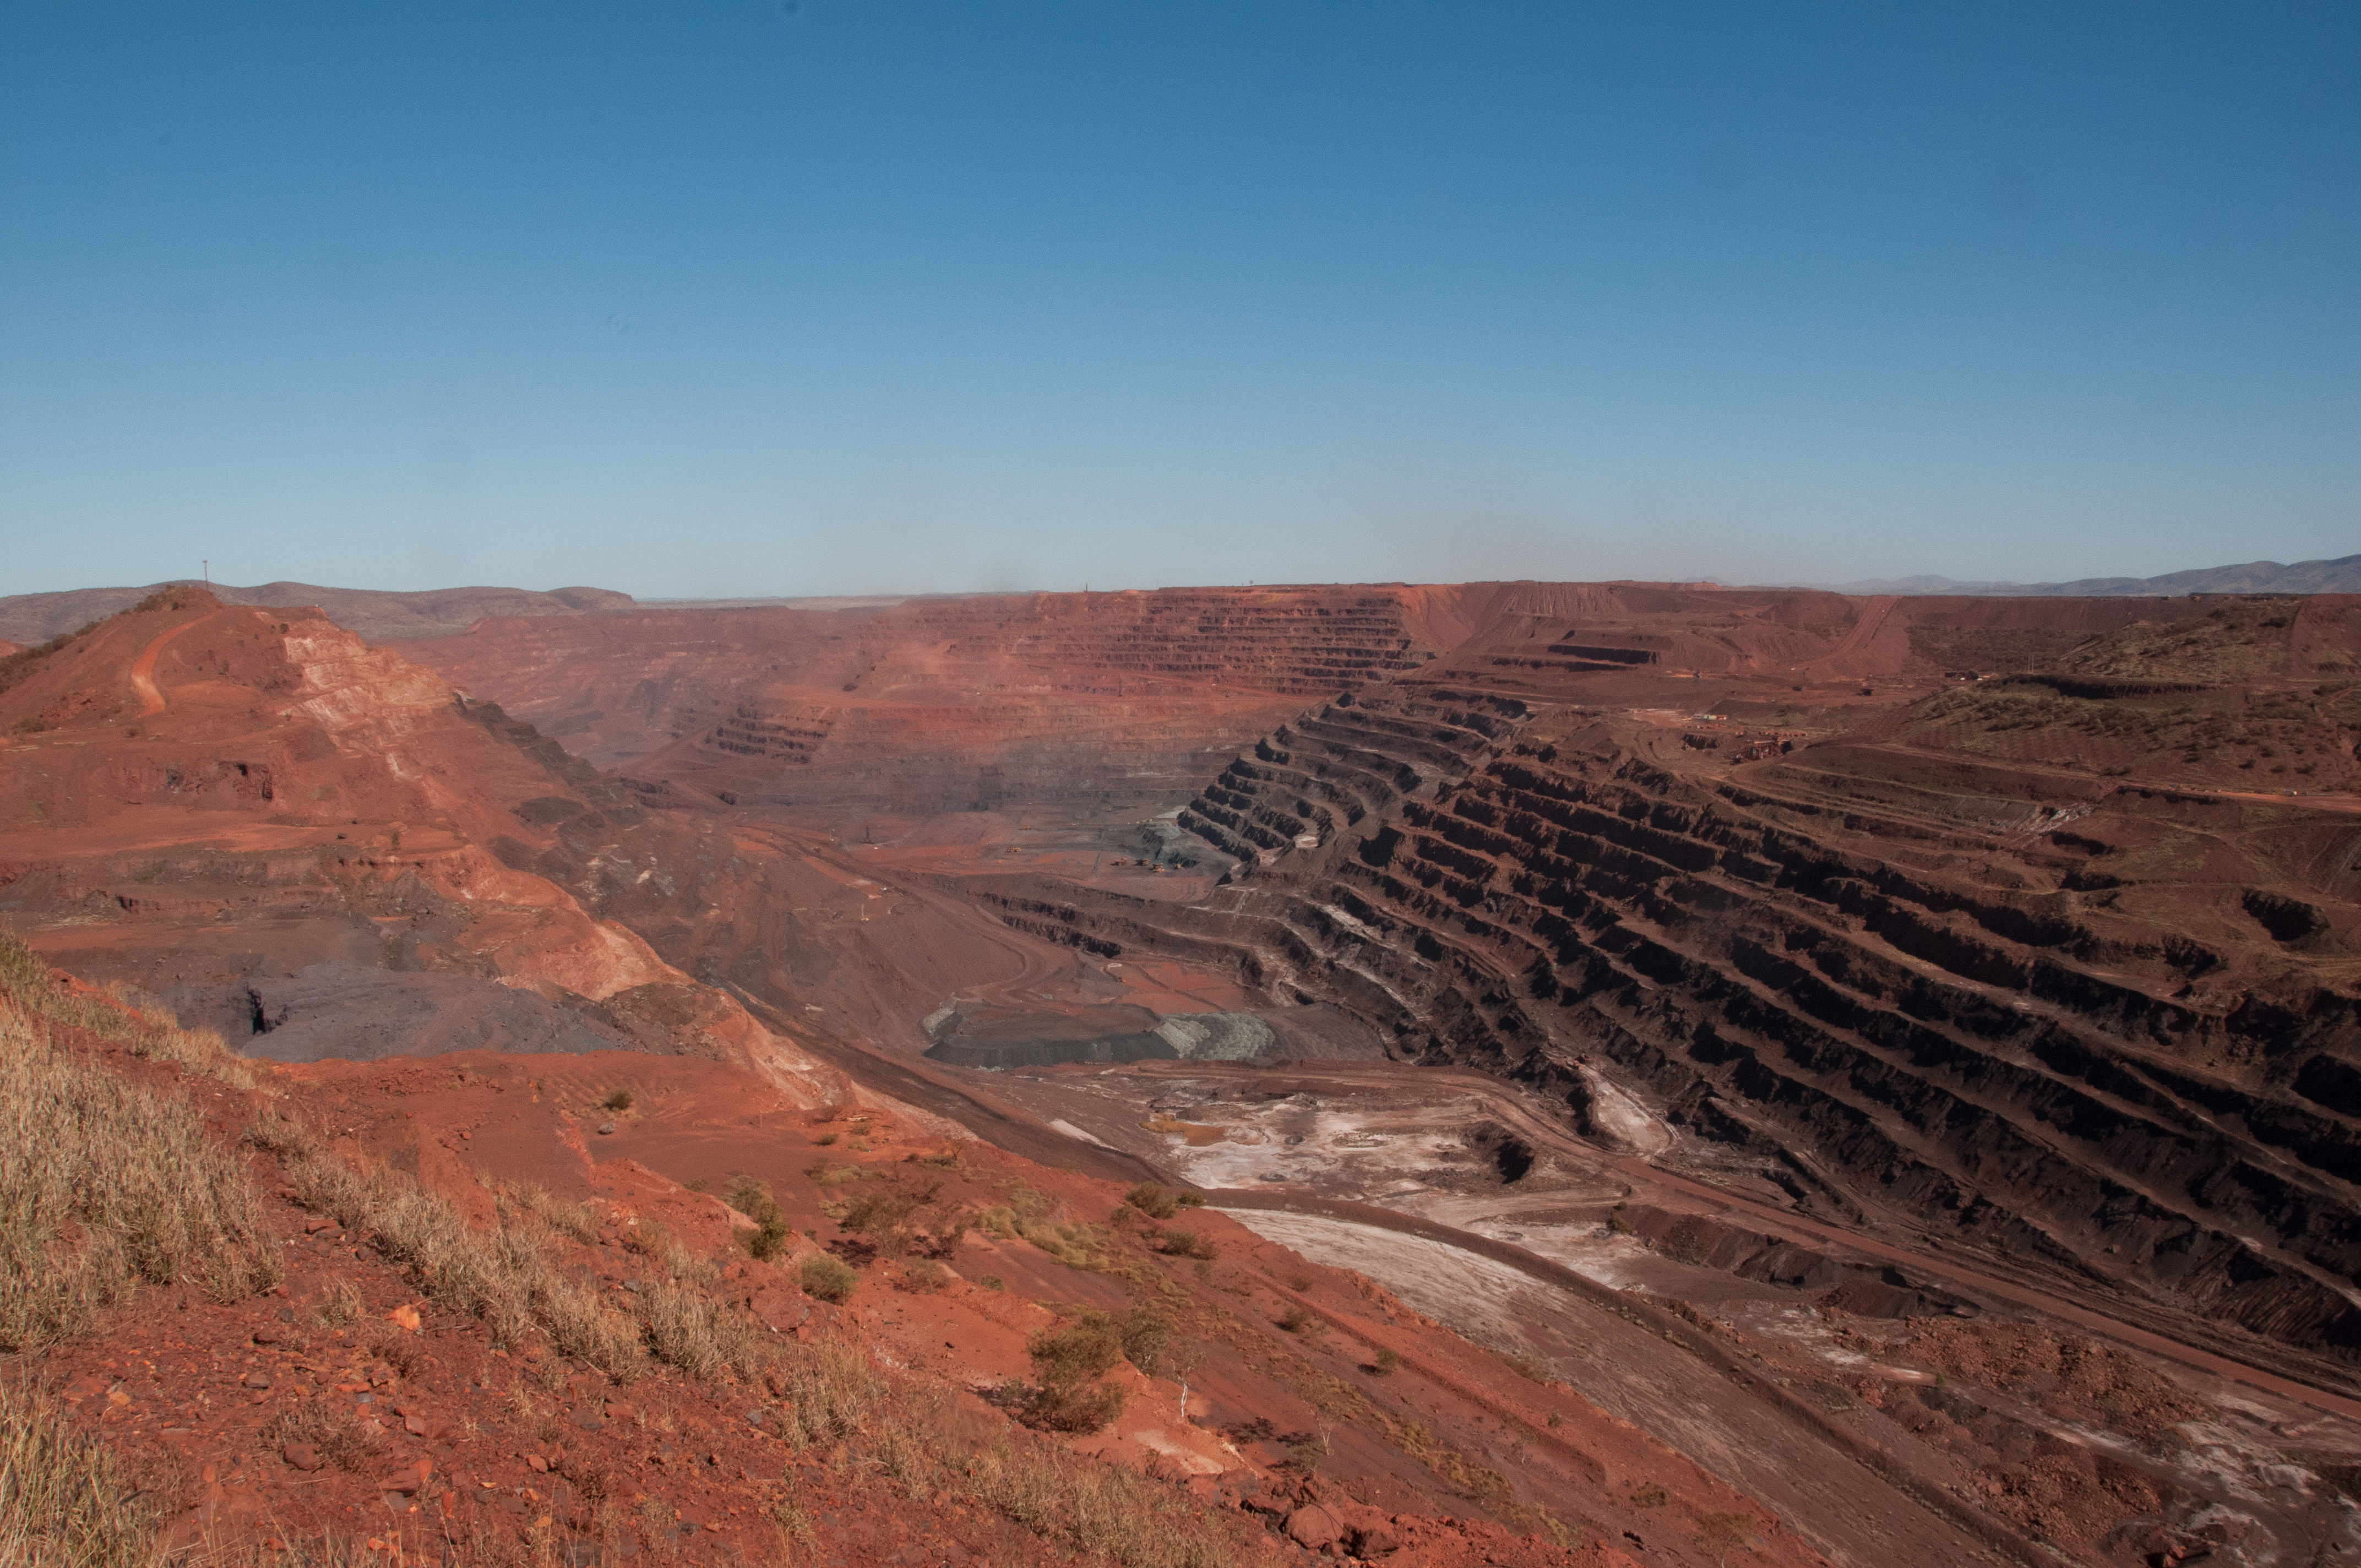 Workers at Pilbara mine receive $240,600 back pay